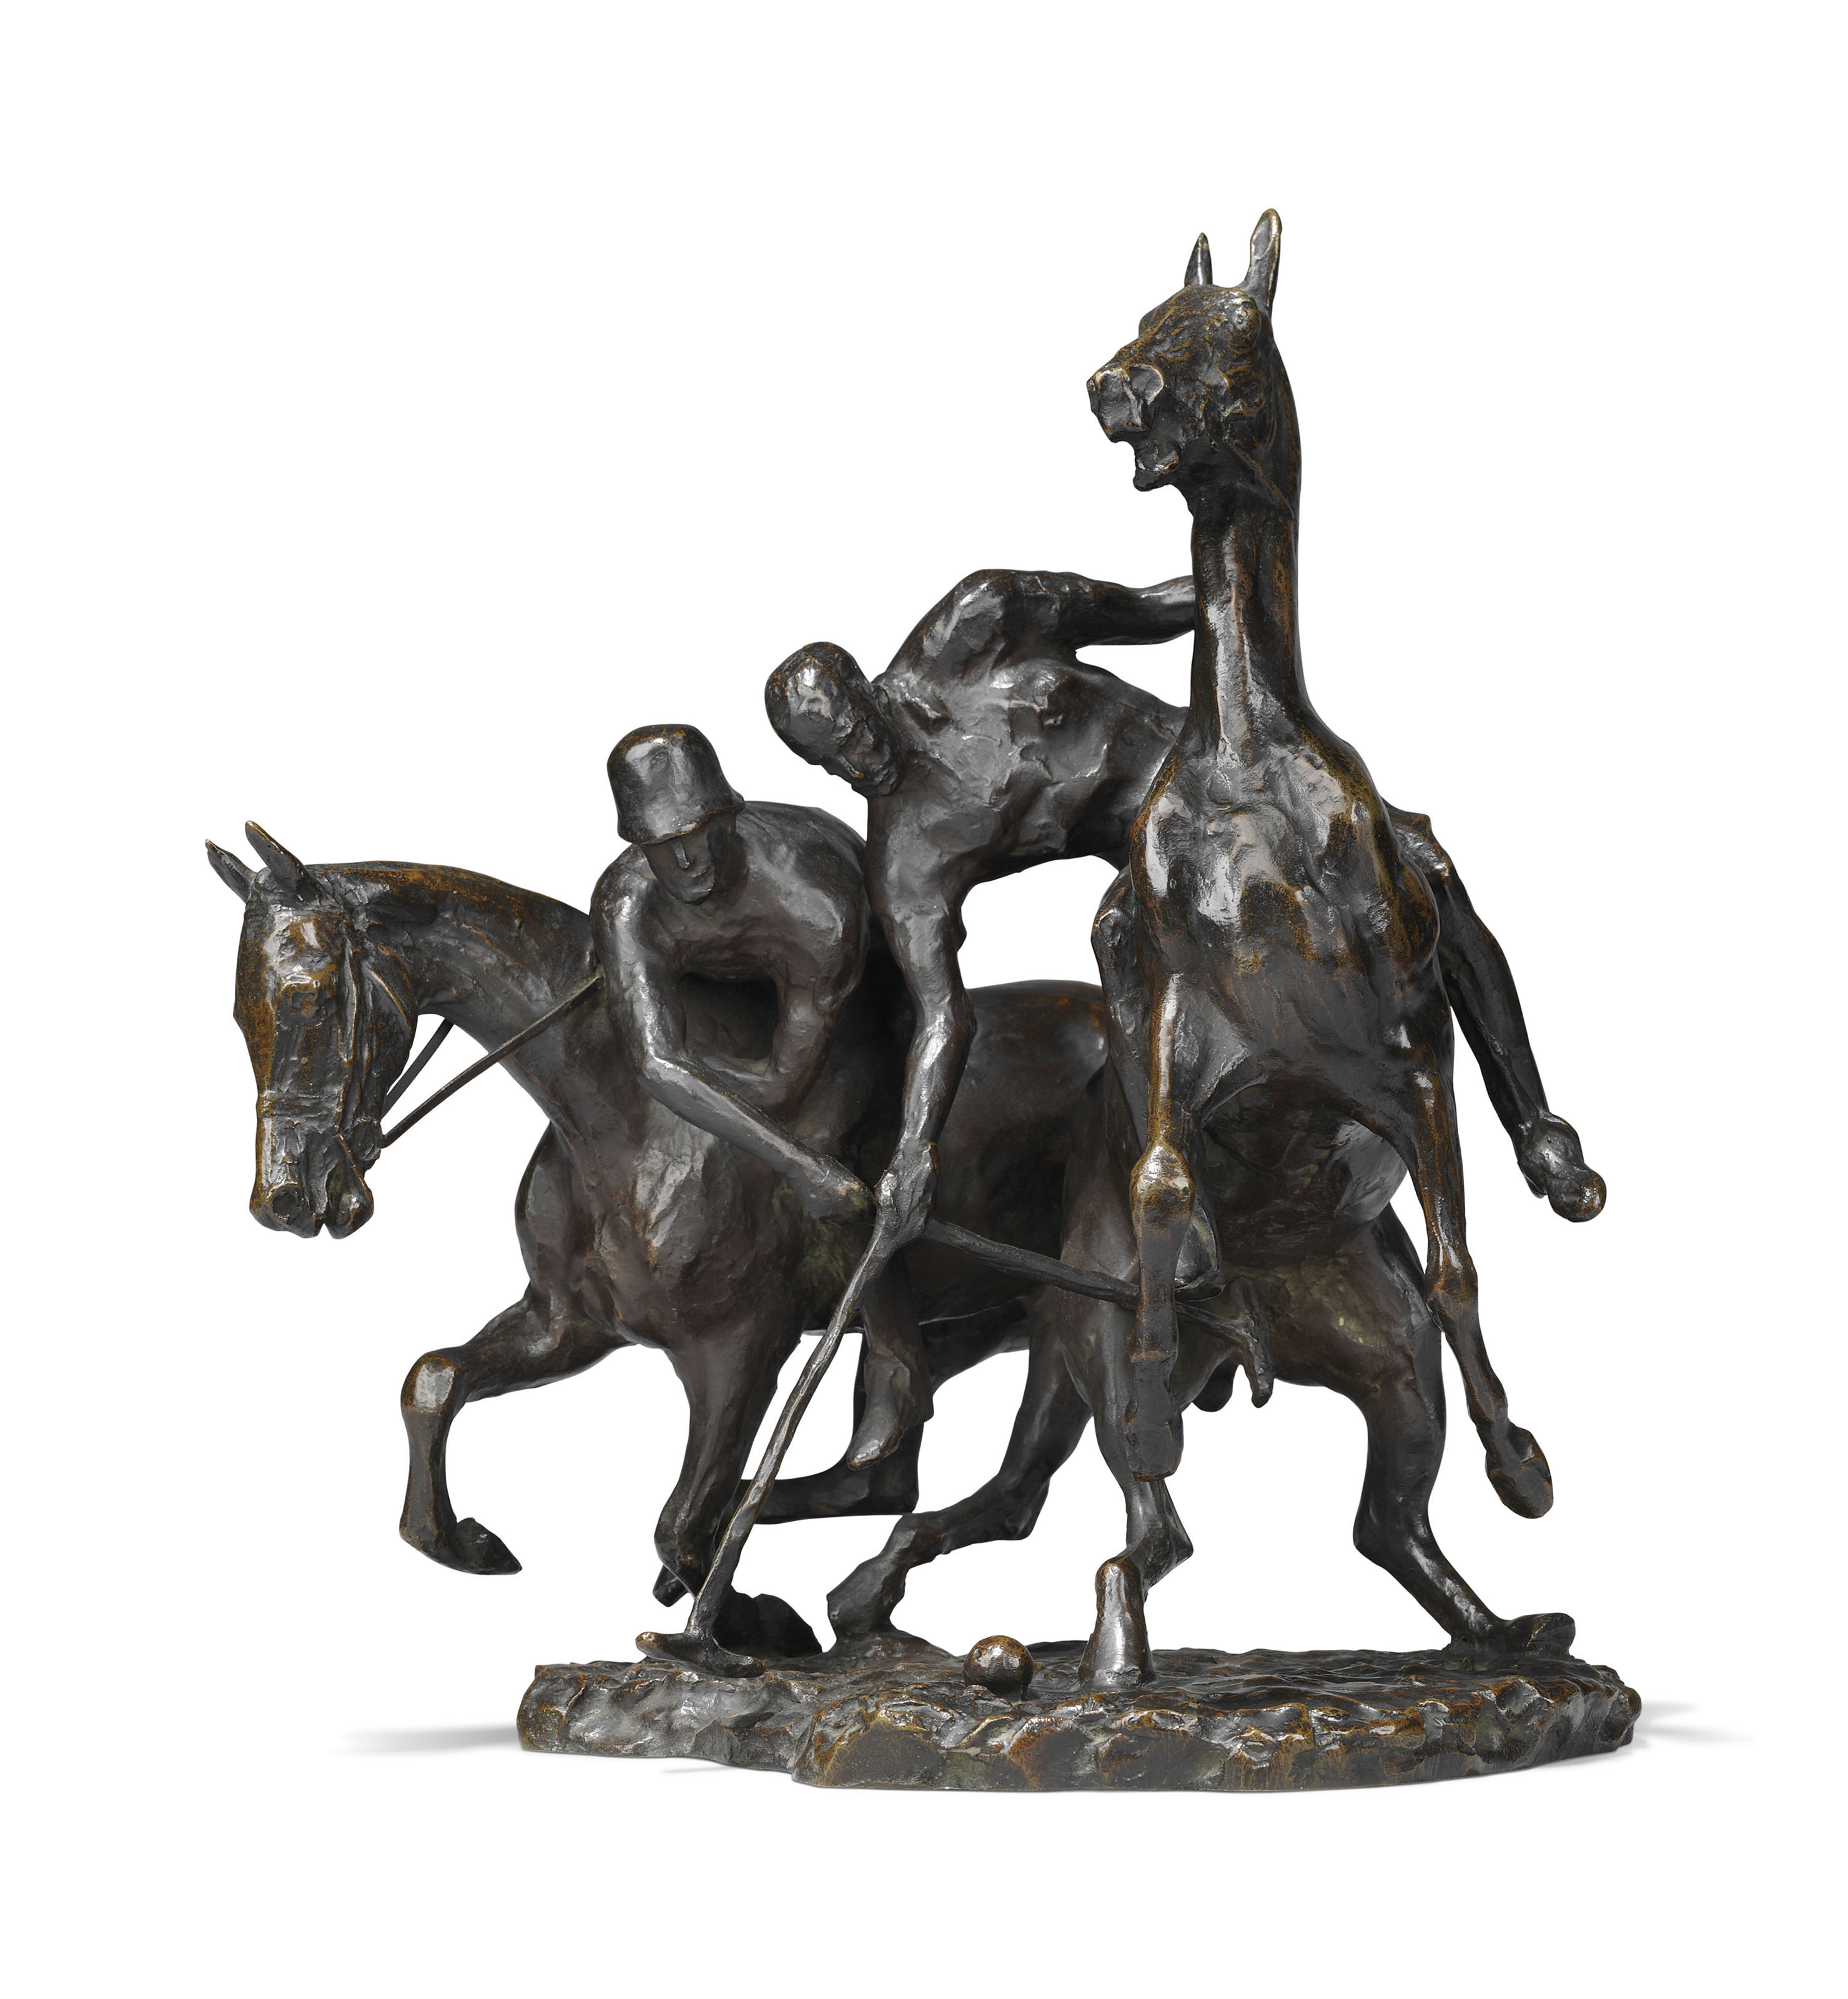 A GERMAN BRONZE GROUP OF POLO PLAYERS TITLED 'POLOSPIELERS'